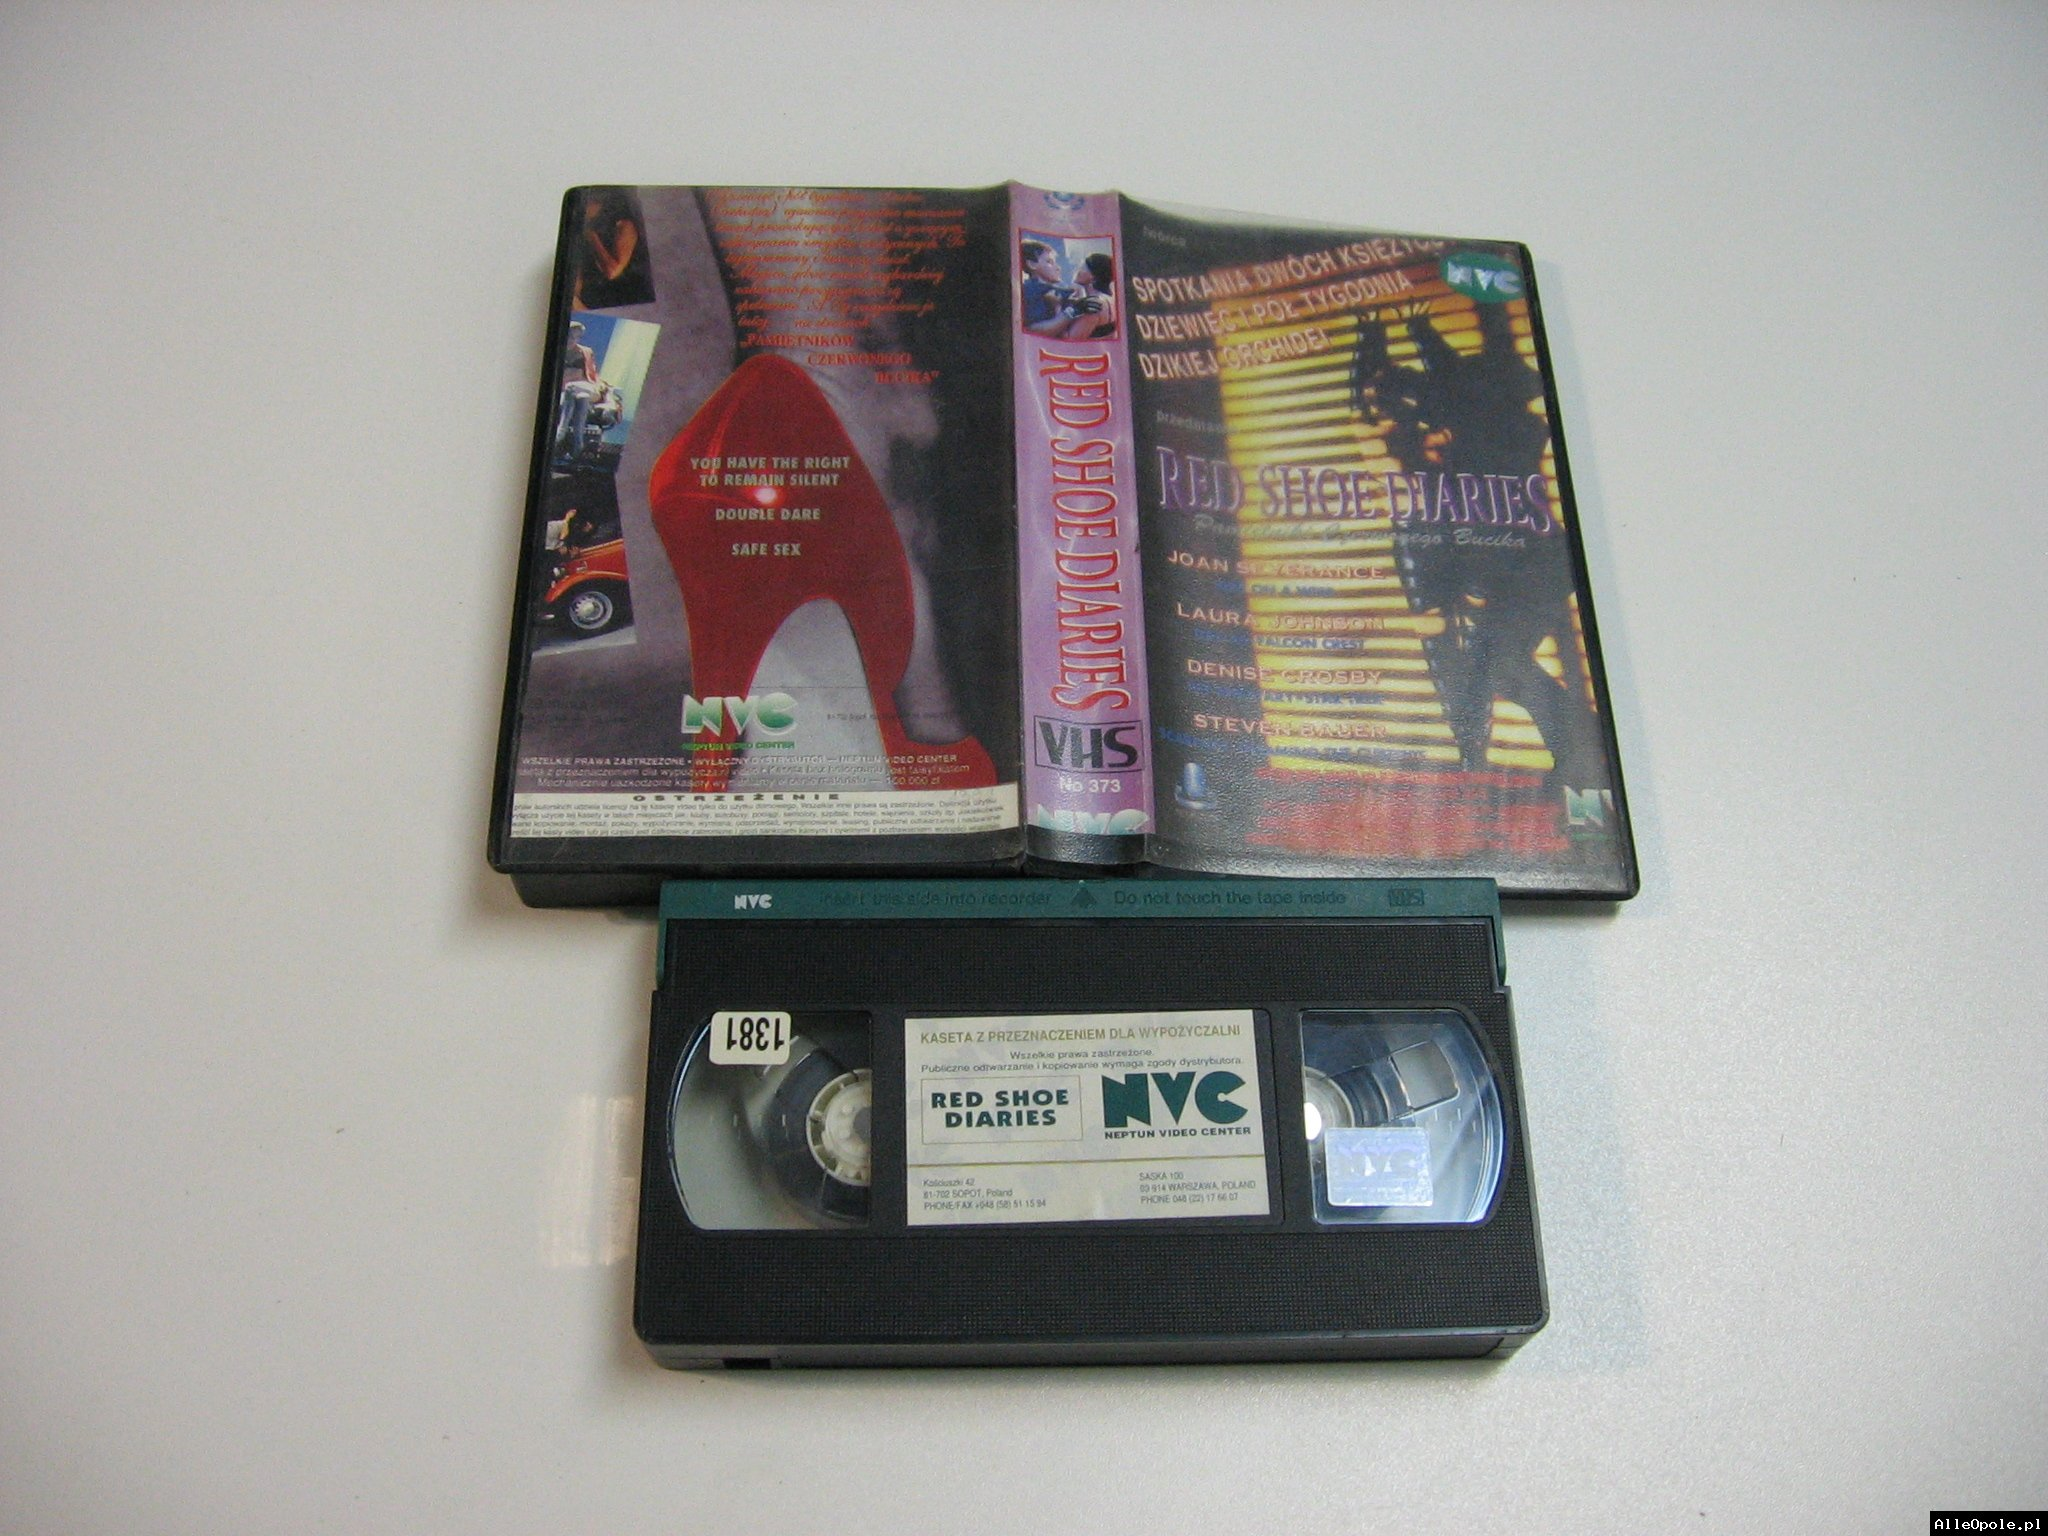 RED SHOE DIARIES - VHS Kaseta Video - Opole 1839